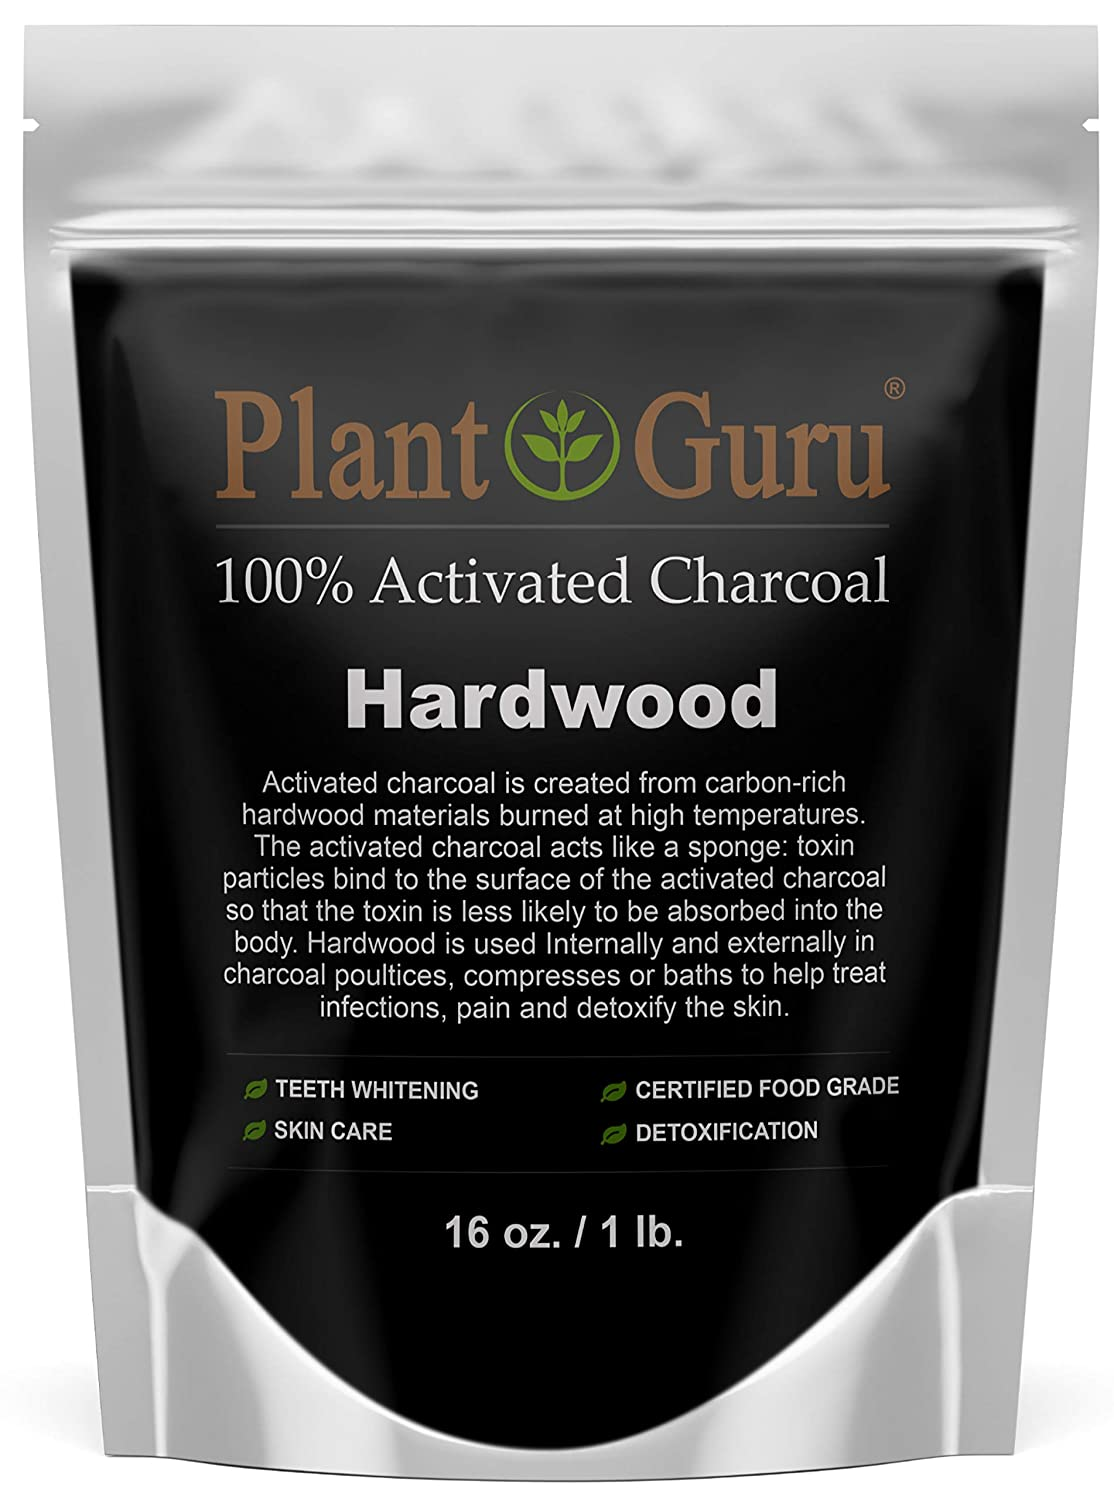 Activated Charcoal Powder 1 lb. HARDWOOD - Food Grade Kosher Non-GMO - Teeth Whitening, Facial Mask and Soap Making. Promotes Natural Detoxification and Helps Digestion